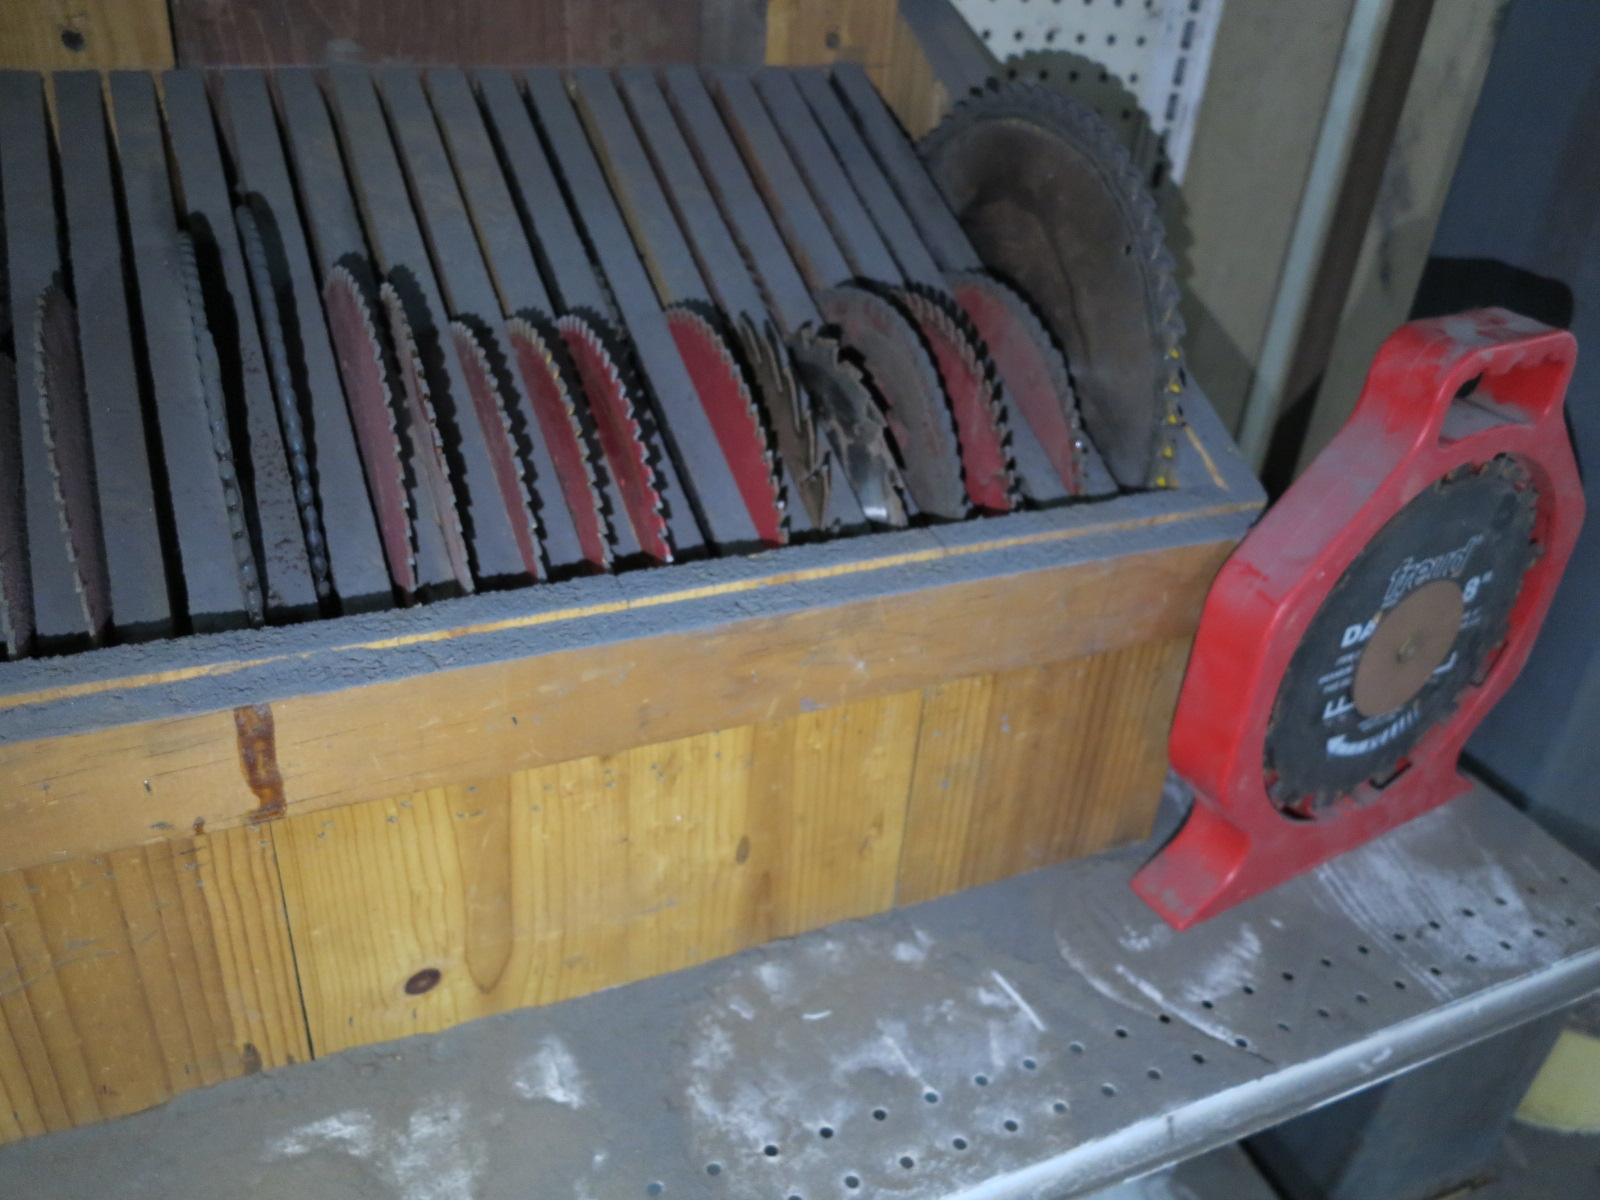 LOT - MISC CIRCULAR SAW BLADES, APPROXIMATELY (30) PIECES - Image 3 of 3